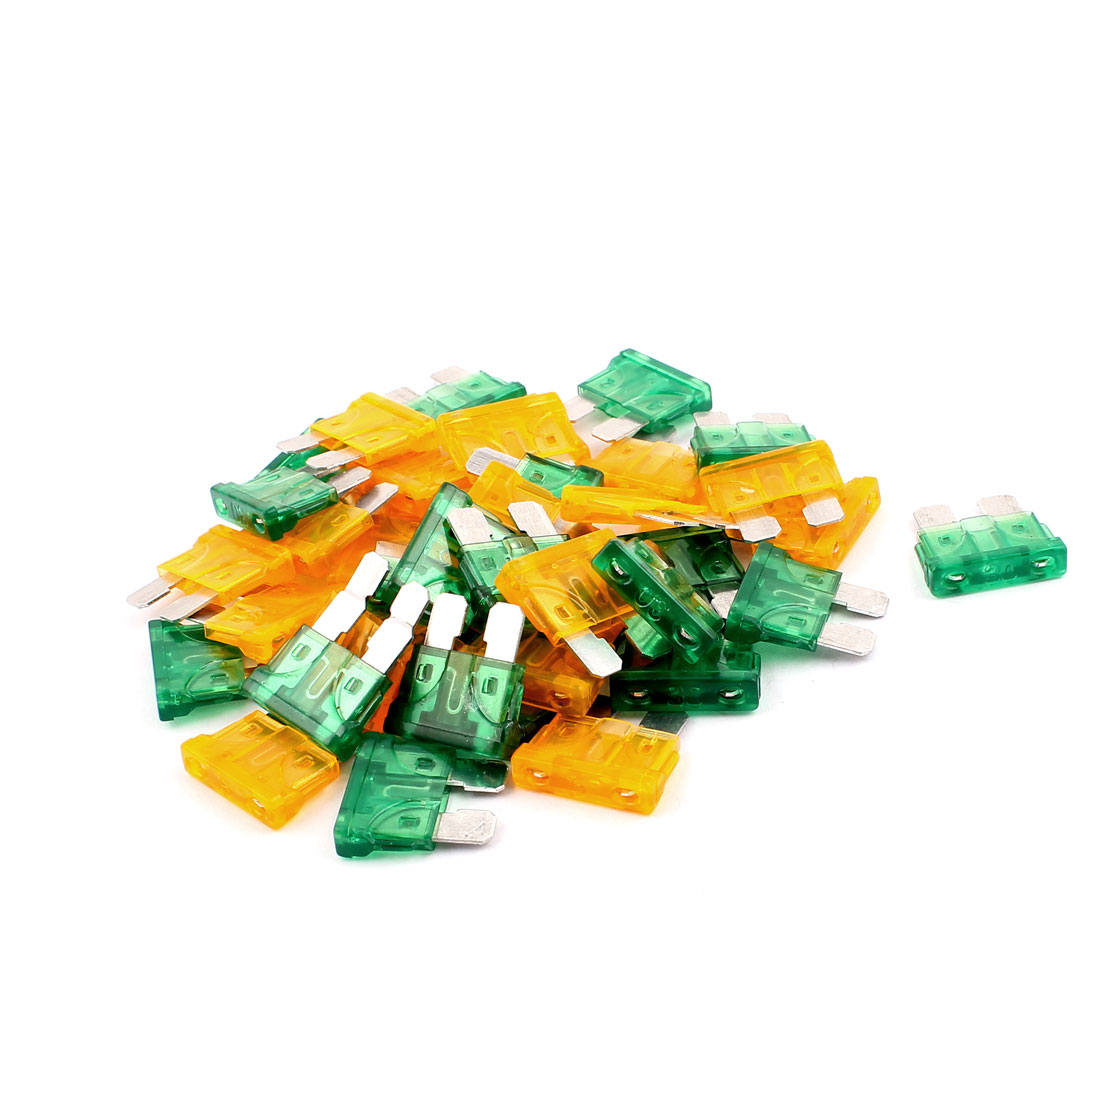 40pcs Orange Green 30A 5A Plastic Casing Mini Blade Fuse for Car Truck Vehicle Motorbike SUV